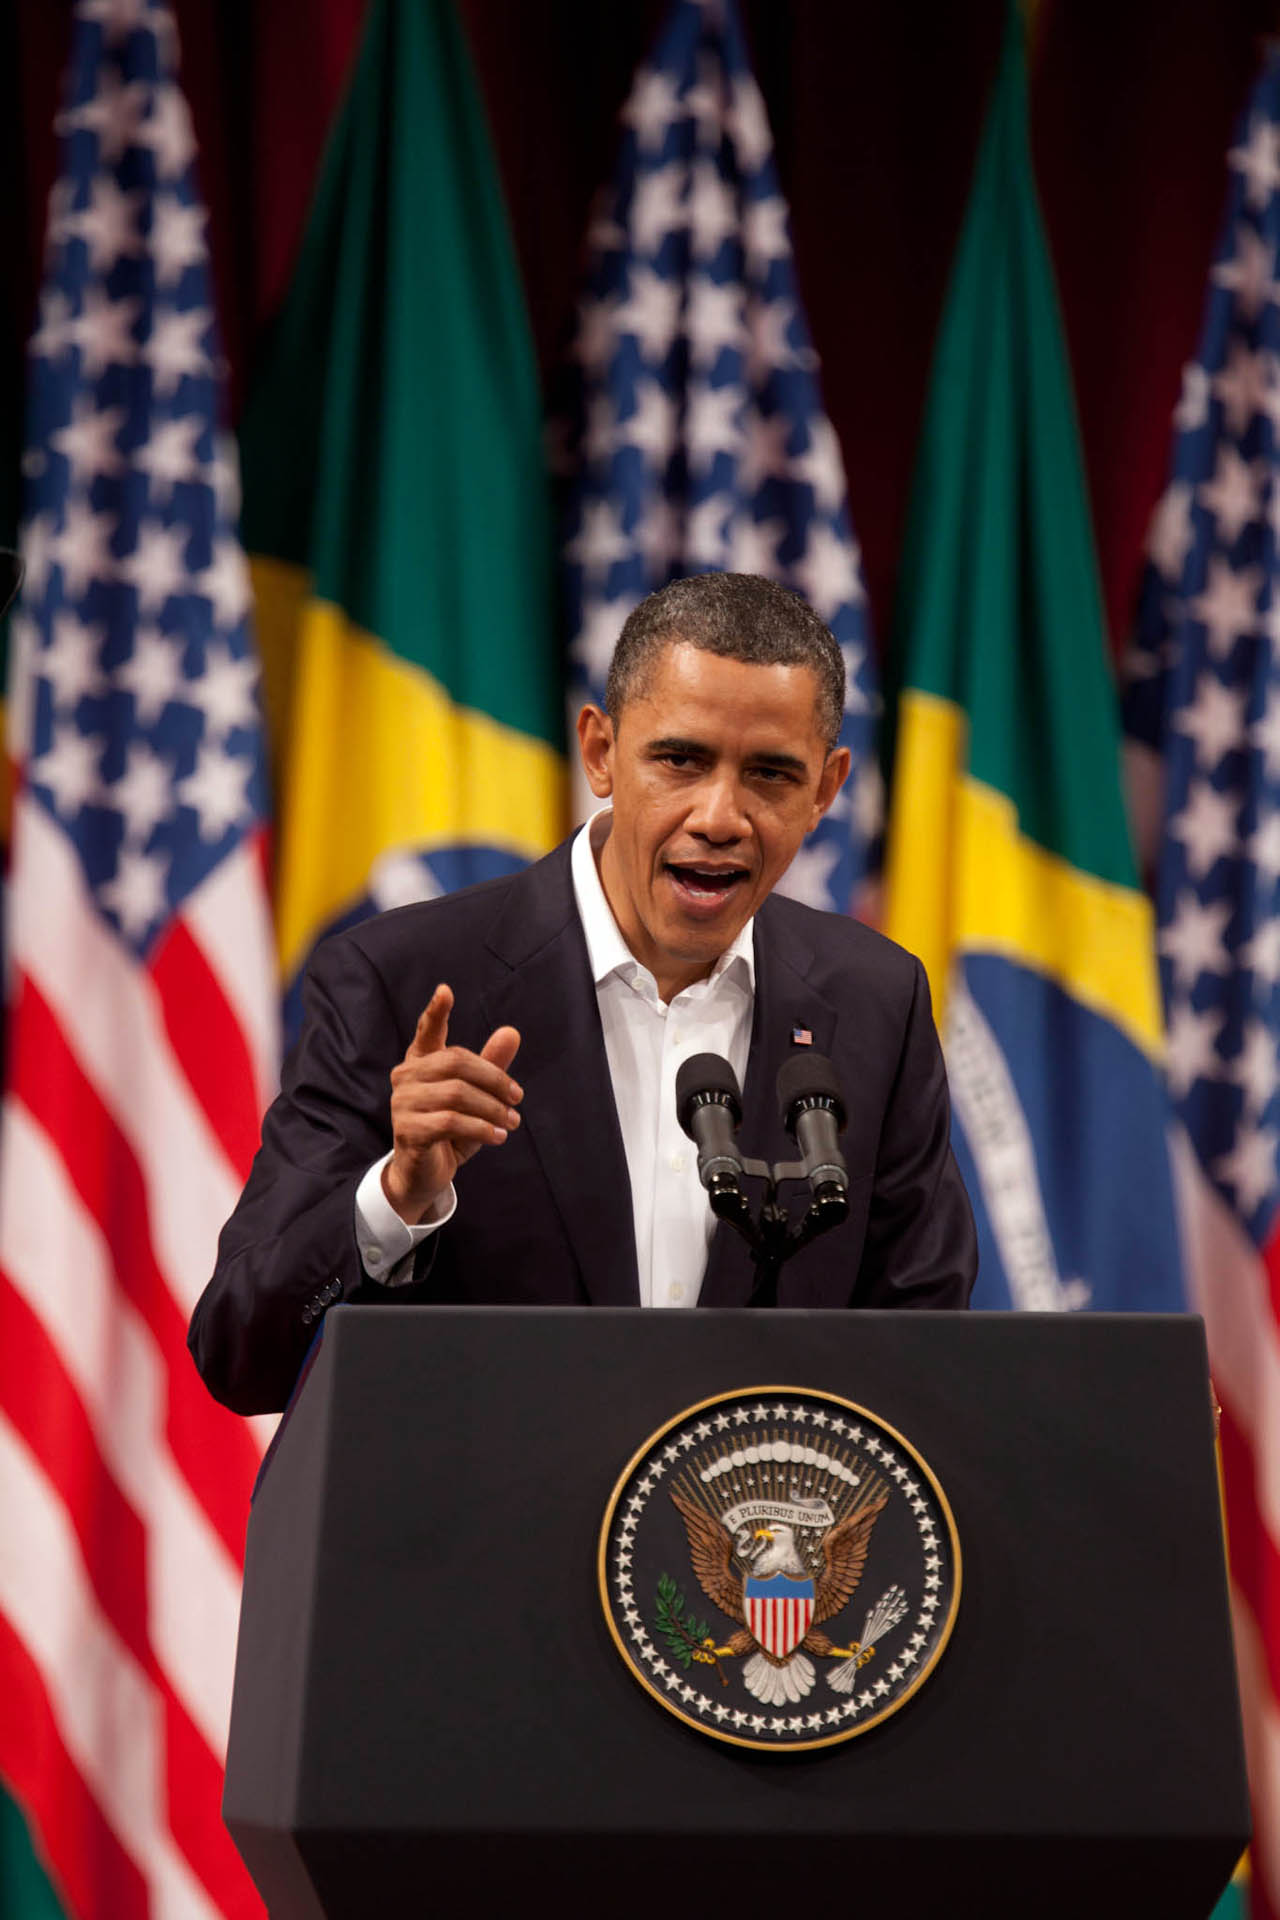 President Obama Speaks to the Brazilian People at Theatro Municipal in Rio de Janiero, Brazil